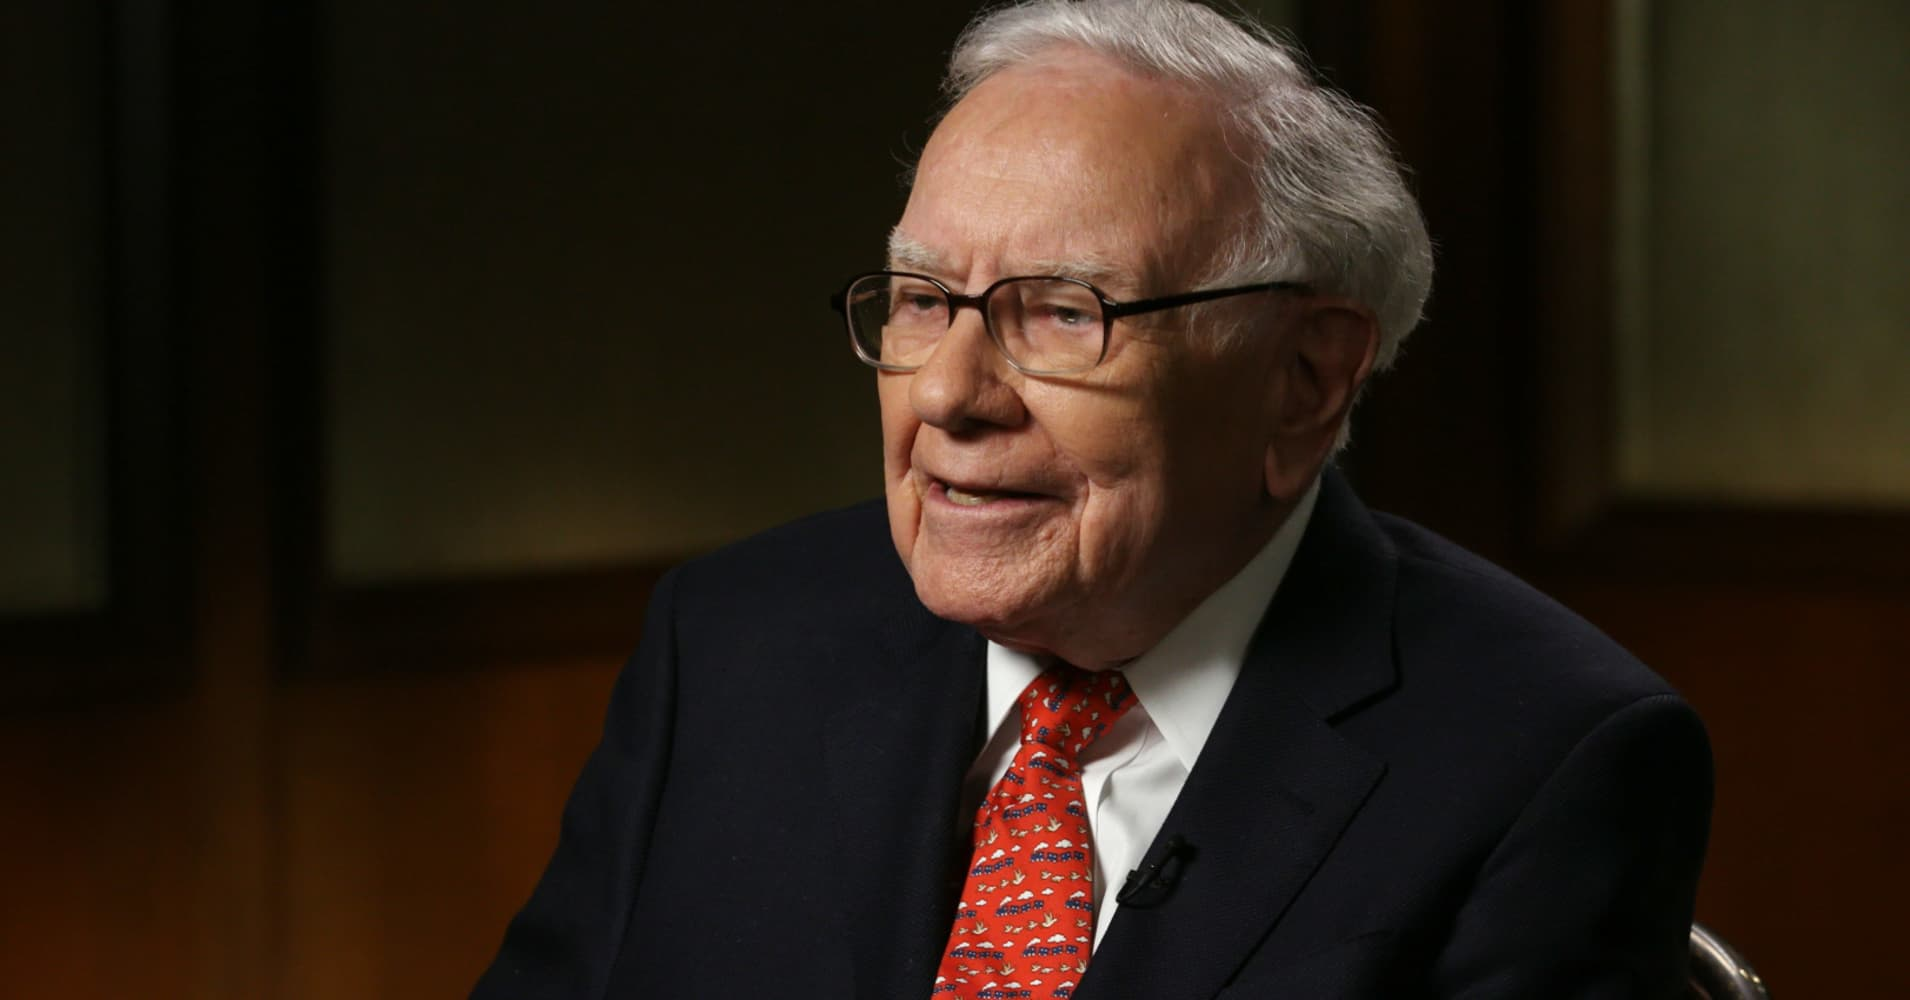 Warren Buffett explains why he doesn't fear stock market sell-offs, but welcomes them instead